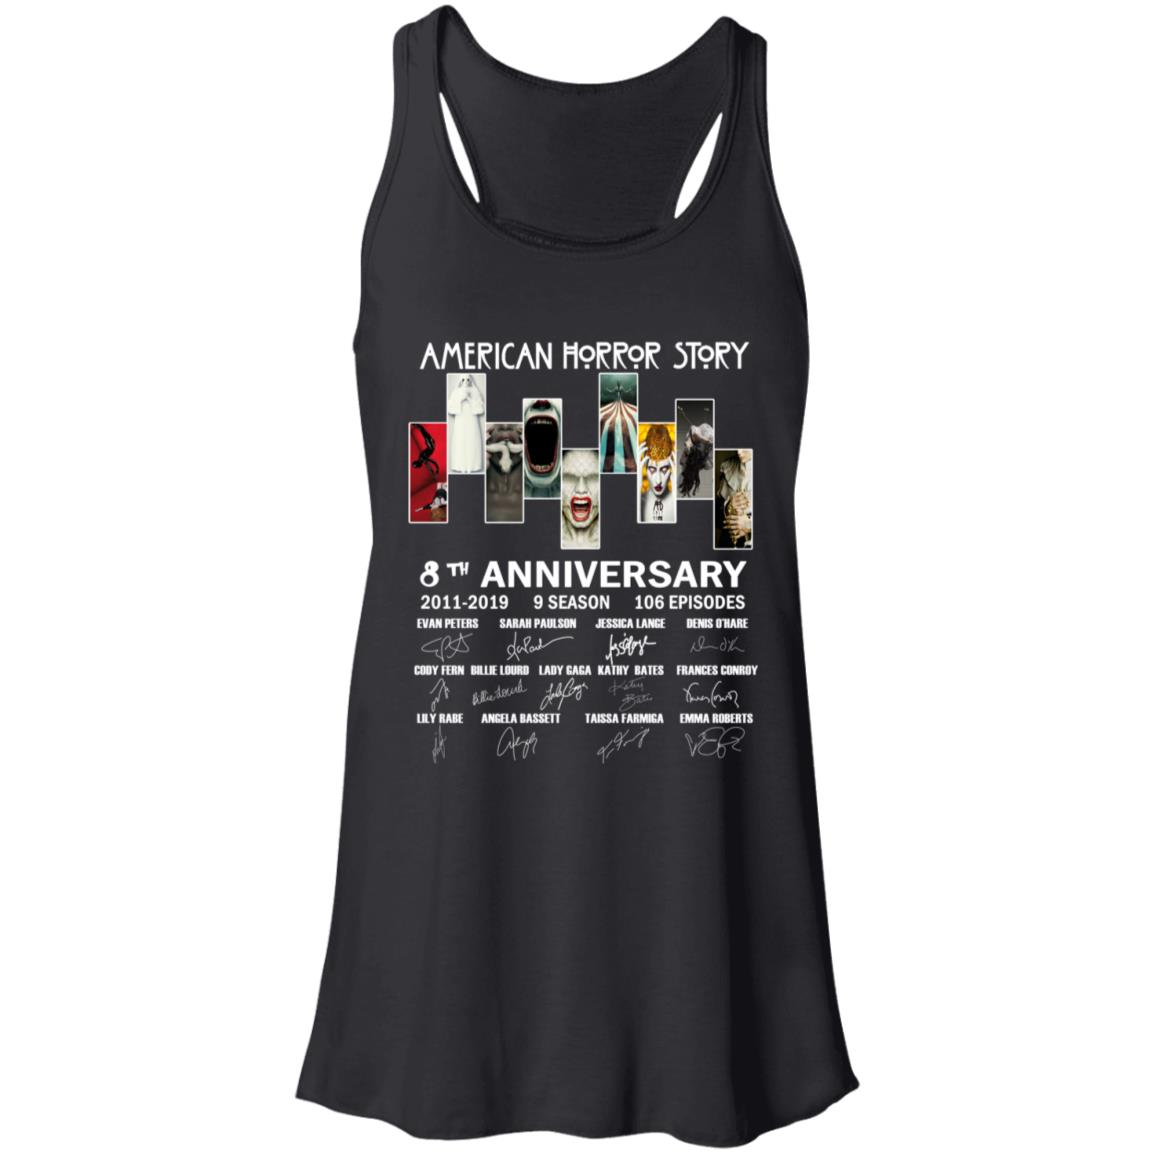 American Horror Story 8th Anniversary Women's Tank Top